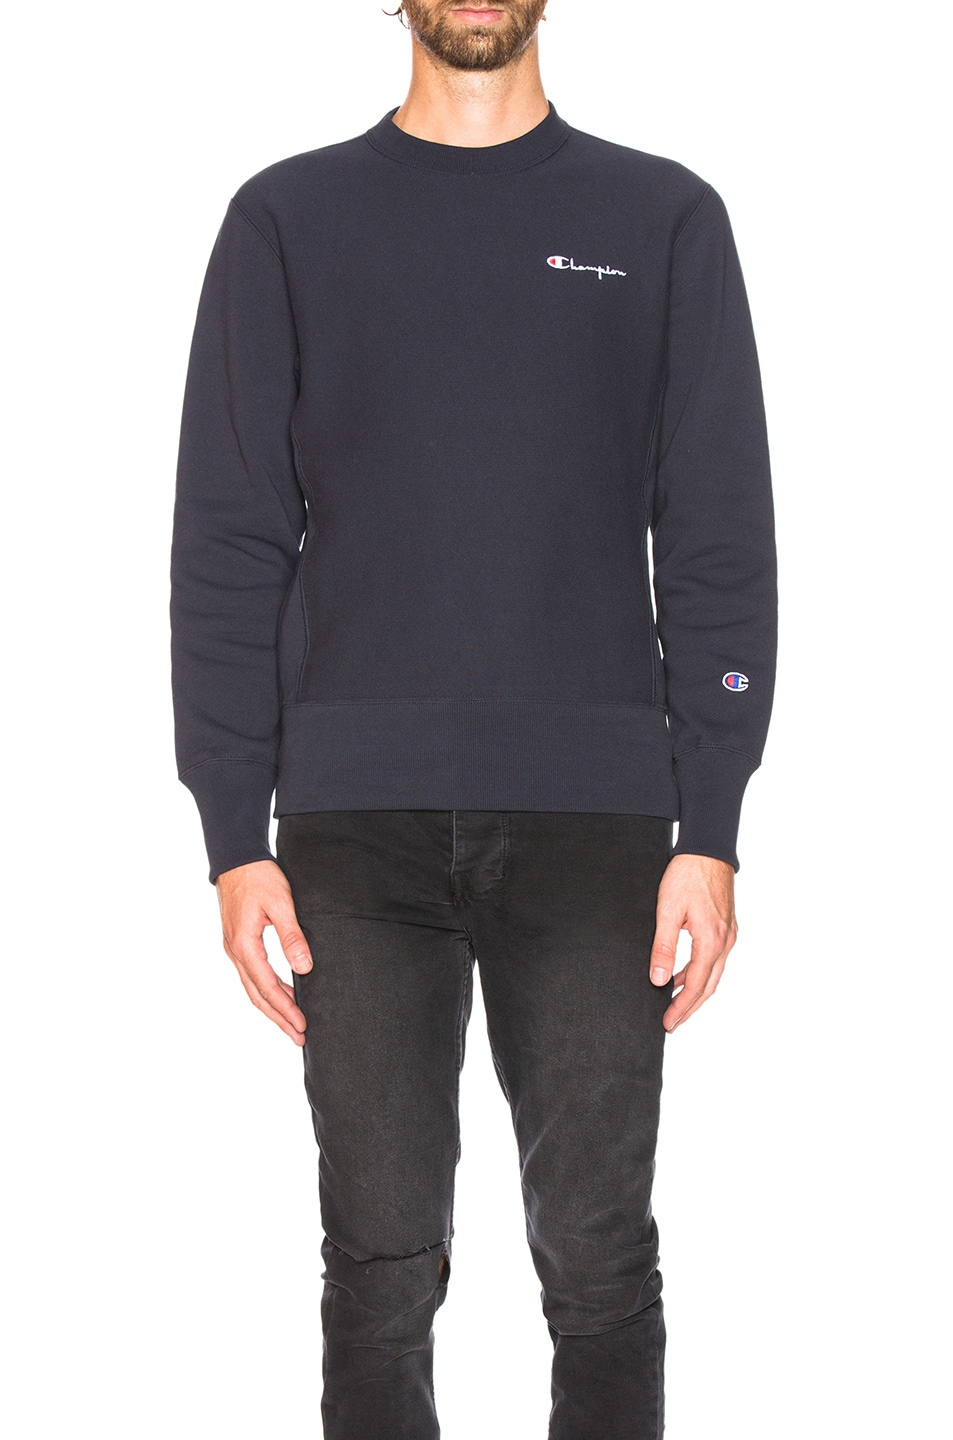 Image 2 of Champion Reverse Weave Crewneck Sweatshirt in Navy